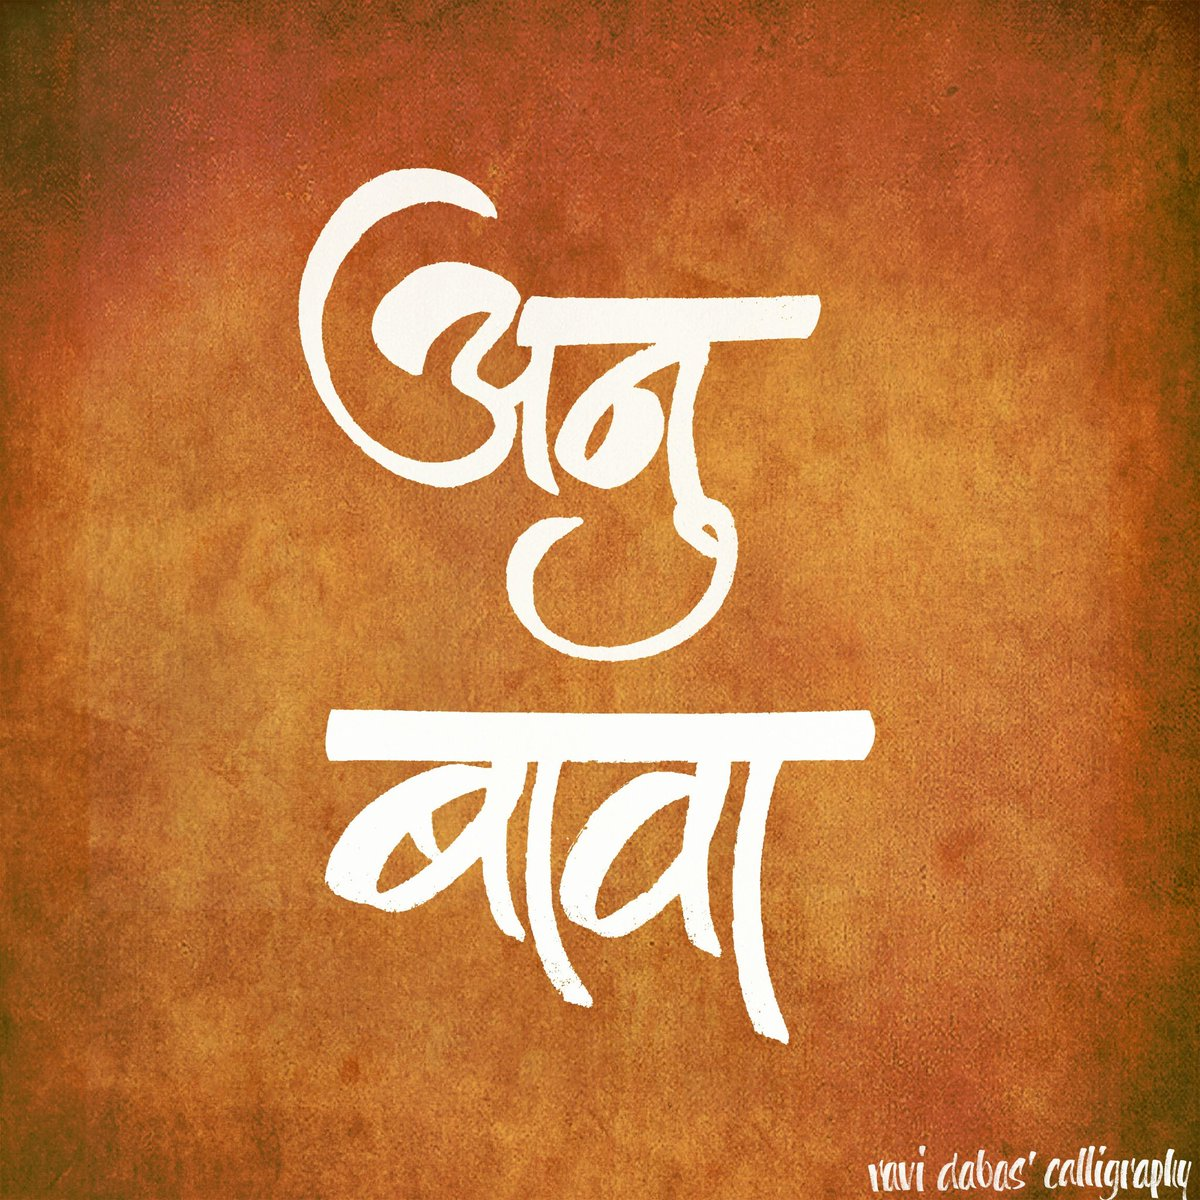 Ravi Dabas On Twitter Anu Bawa Hindi Calligraphy Devanagari DevanagariCalligraphy HindiCalligraphy Names Freehand Handlettering